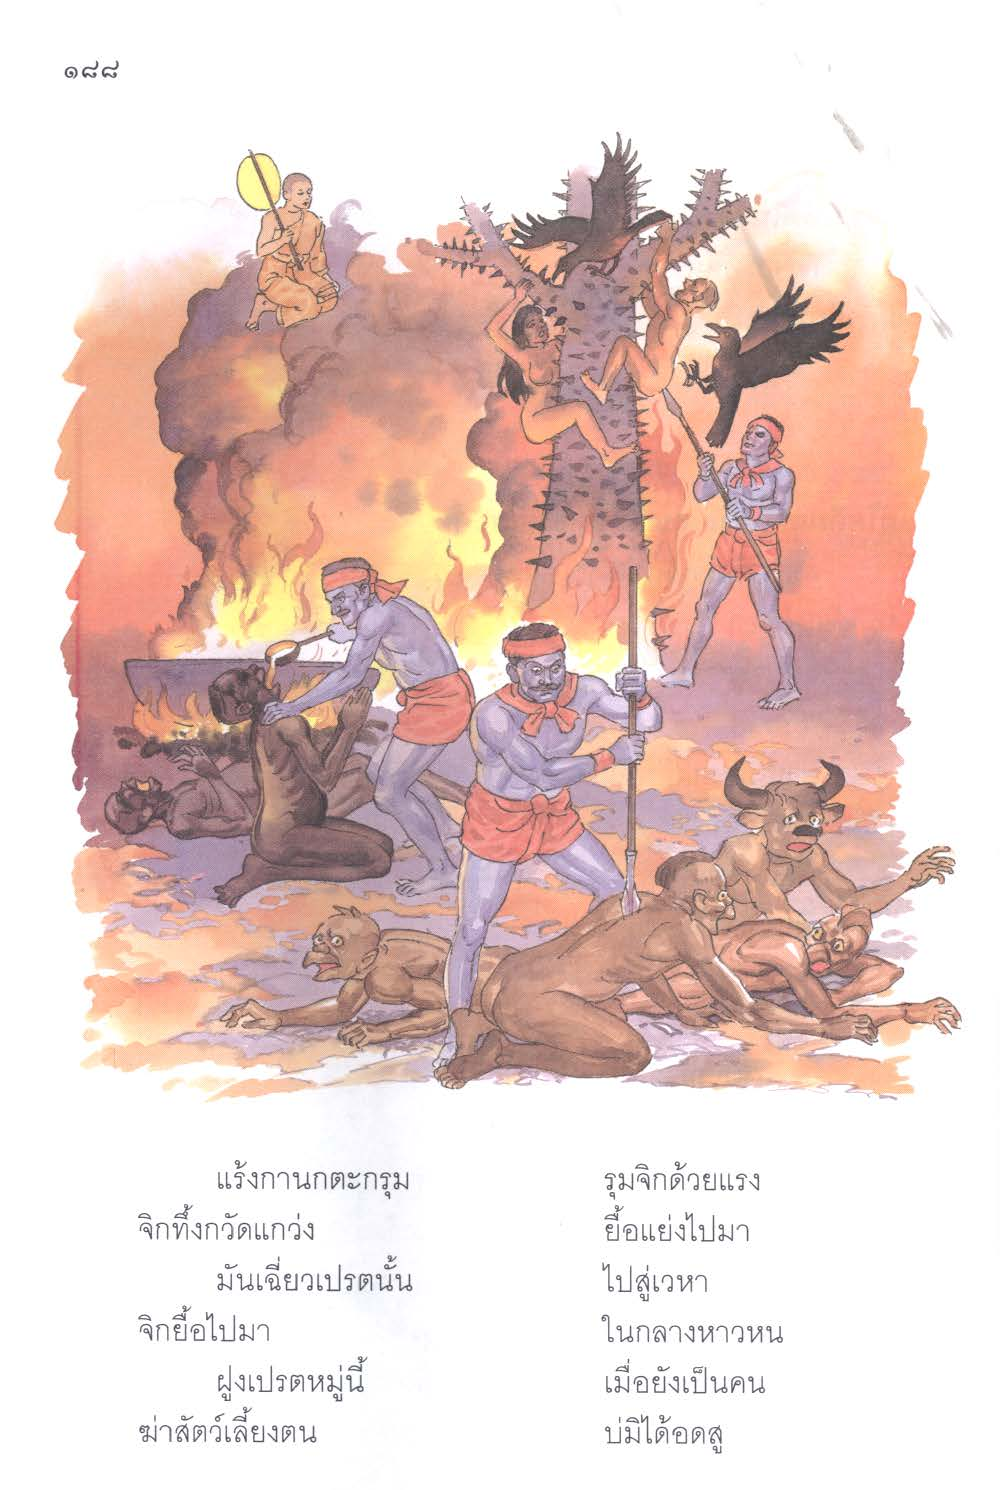 ebook_thai_sect_2_65-990_Page_196.jpg